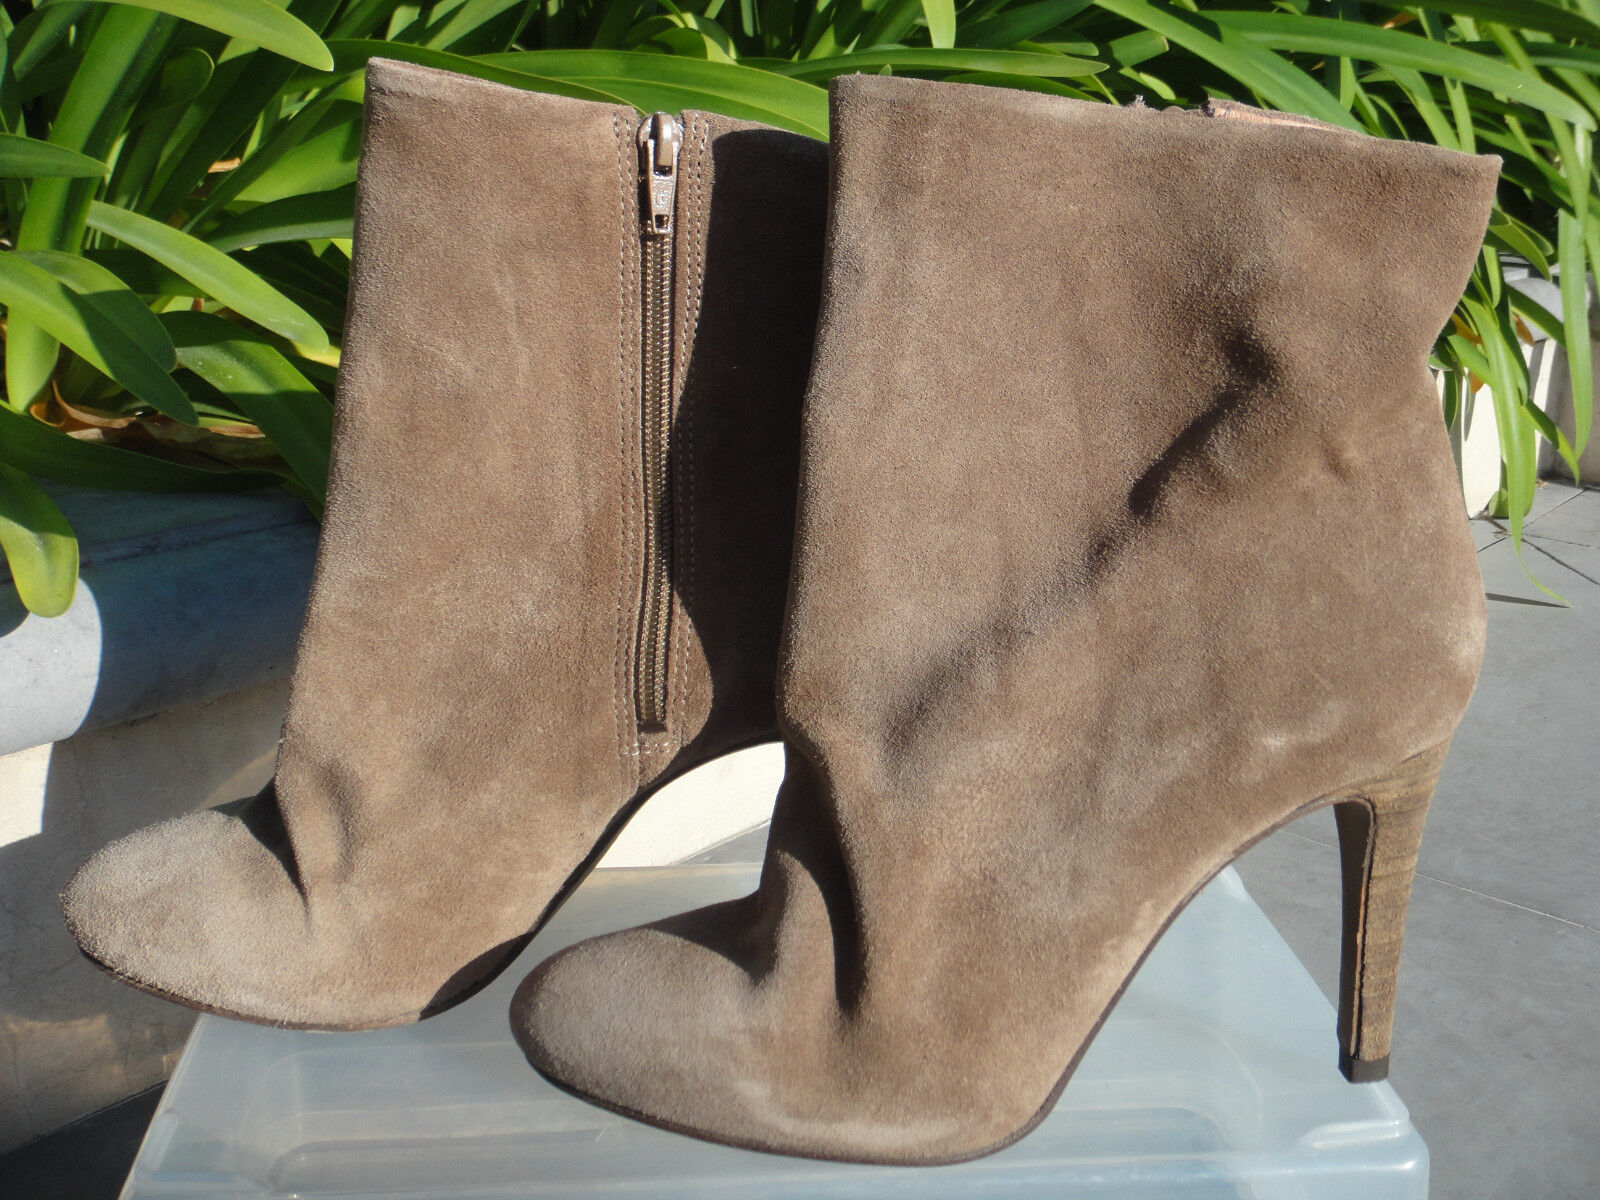 FREE PEOPLE Fairfax Suede Ankle Boot Slouchy Silhouette Heel Size US8 EUR38 178